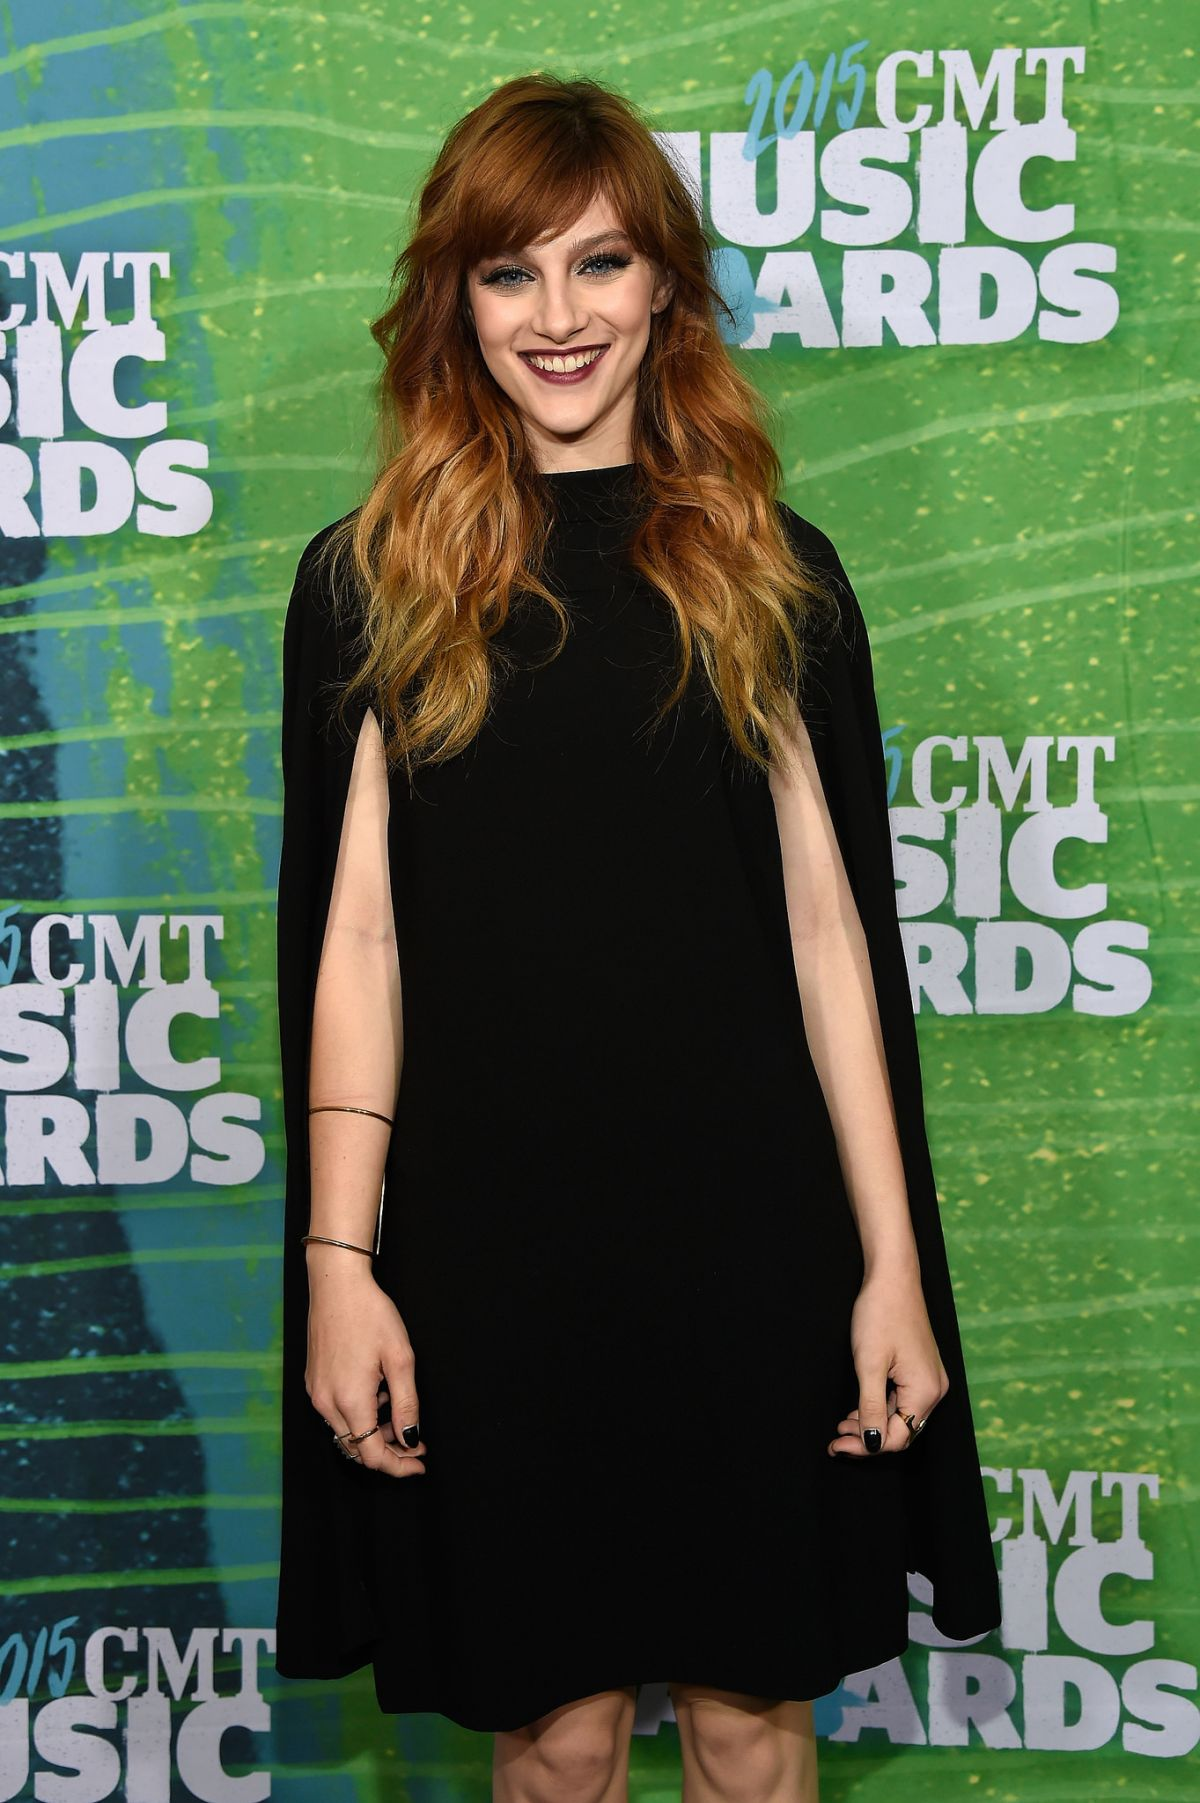 AUBREY PEEPLES at 2015 CMT Music Awards in Nashville